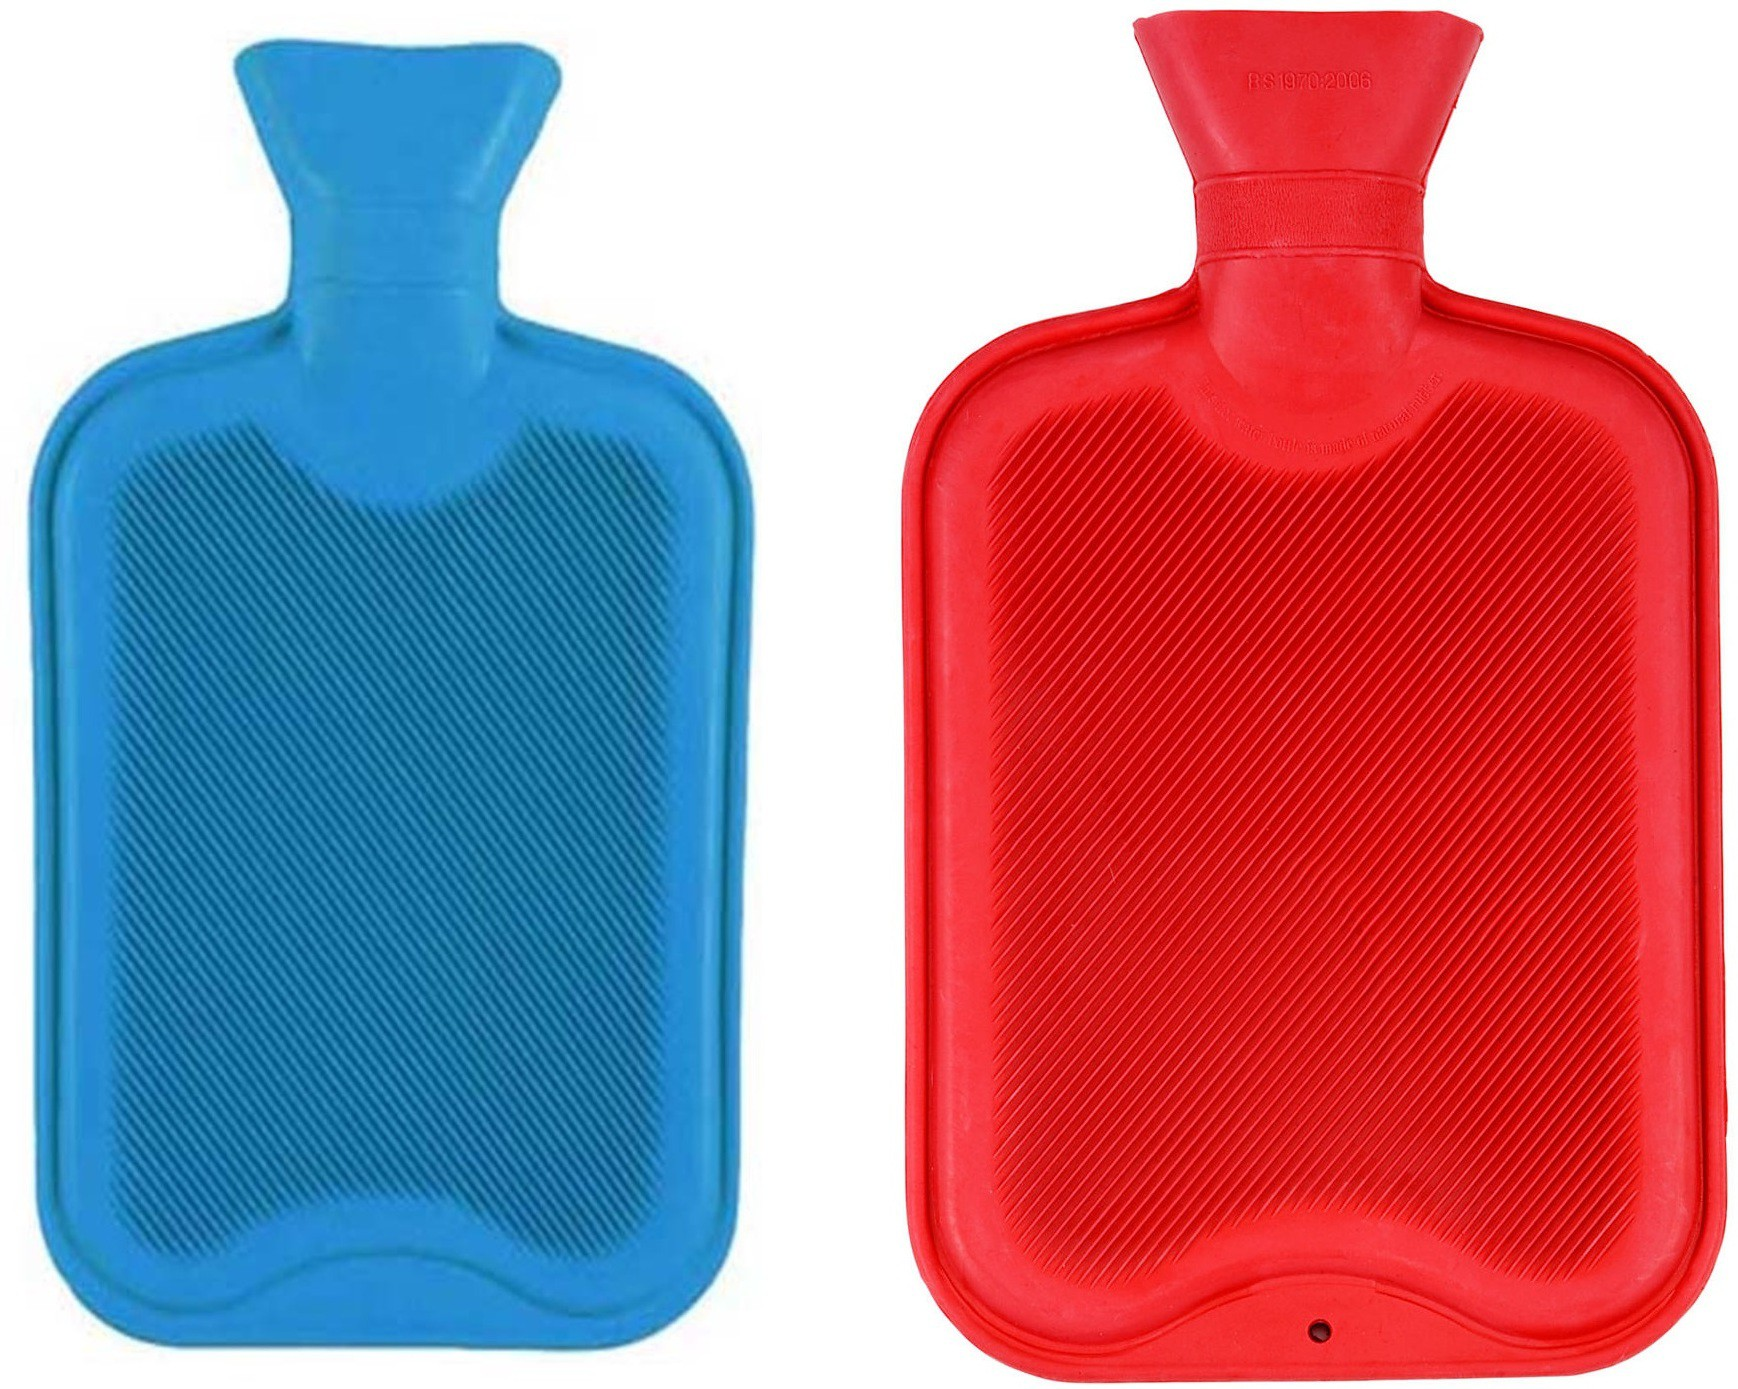 Ramco Pain Relievers Non-electrical 3 L Hot Water Bag(Blue, Red)